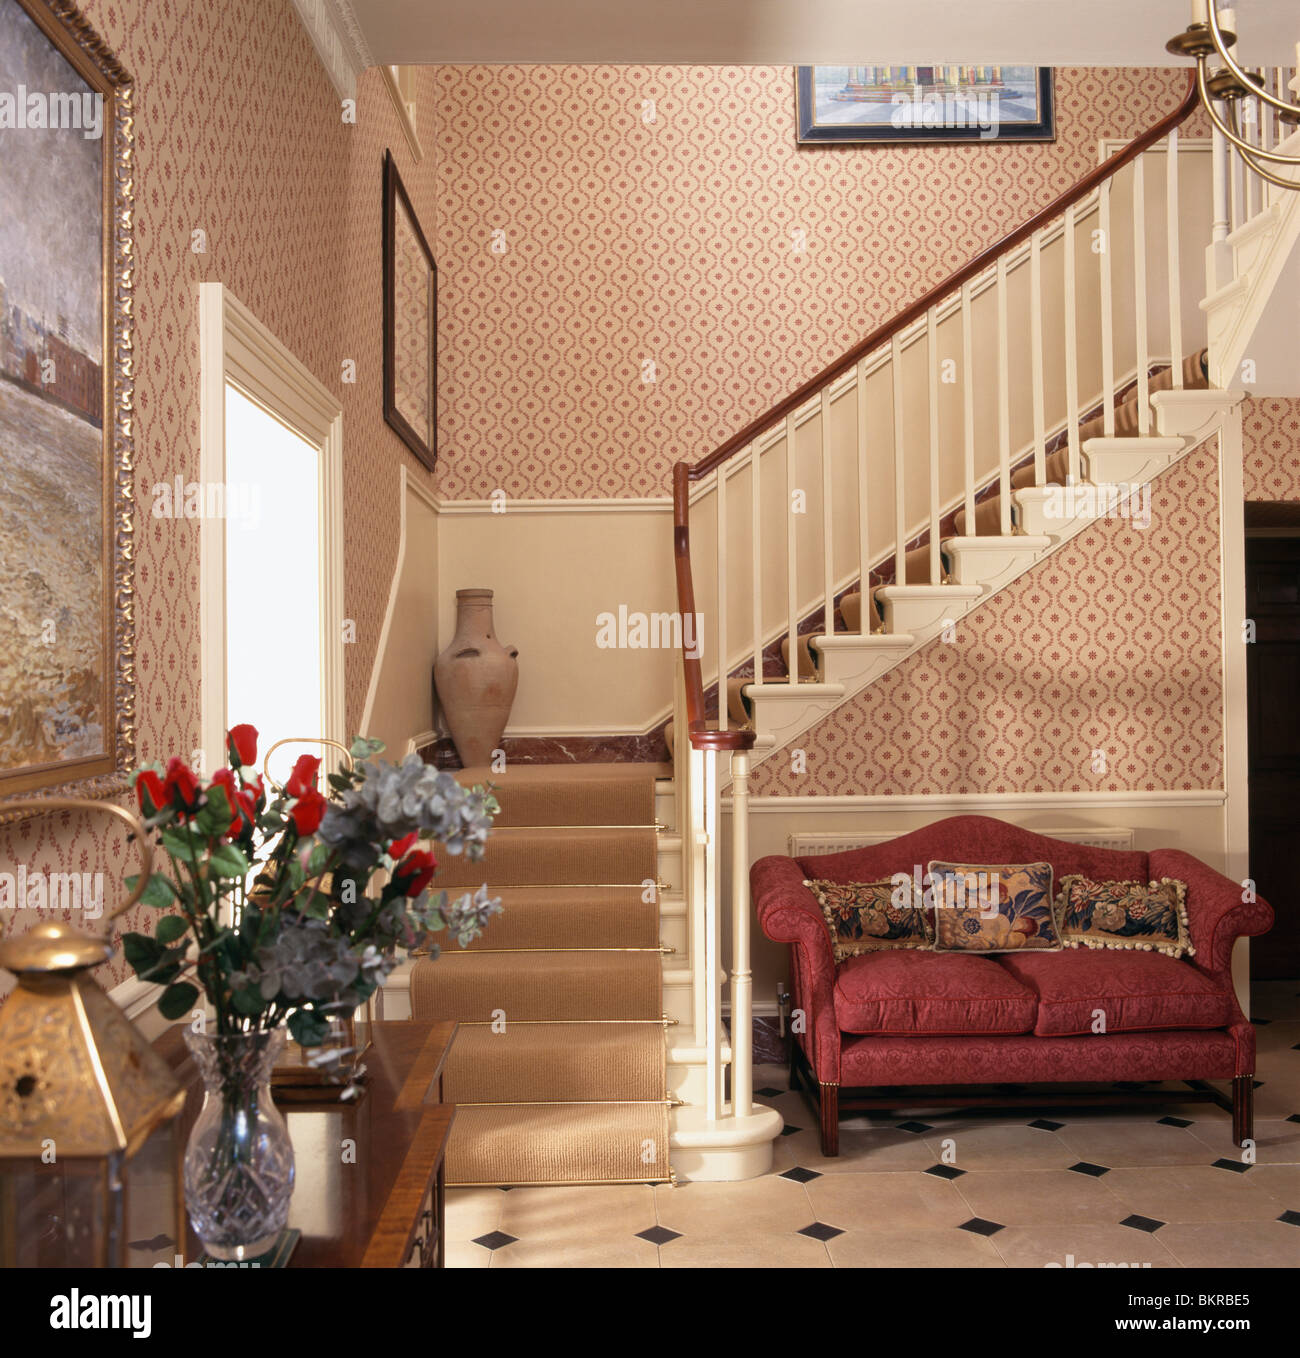 Red Sofa Below Staircase With Cream Carpet In Traditional Cream Hall